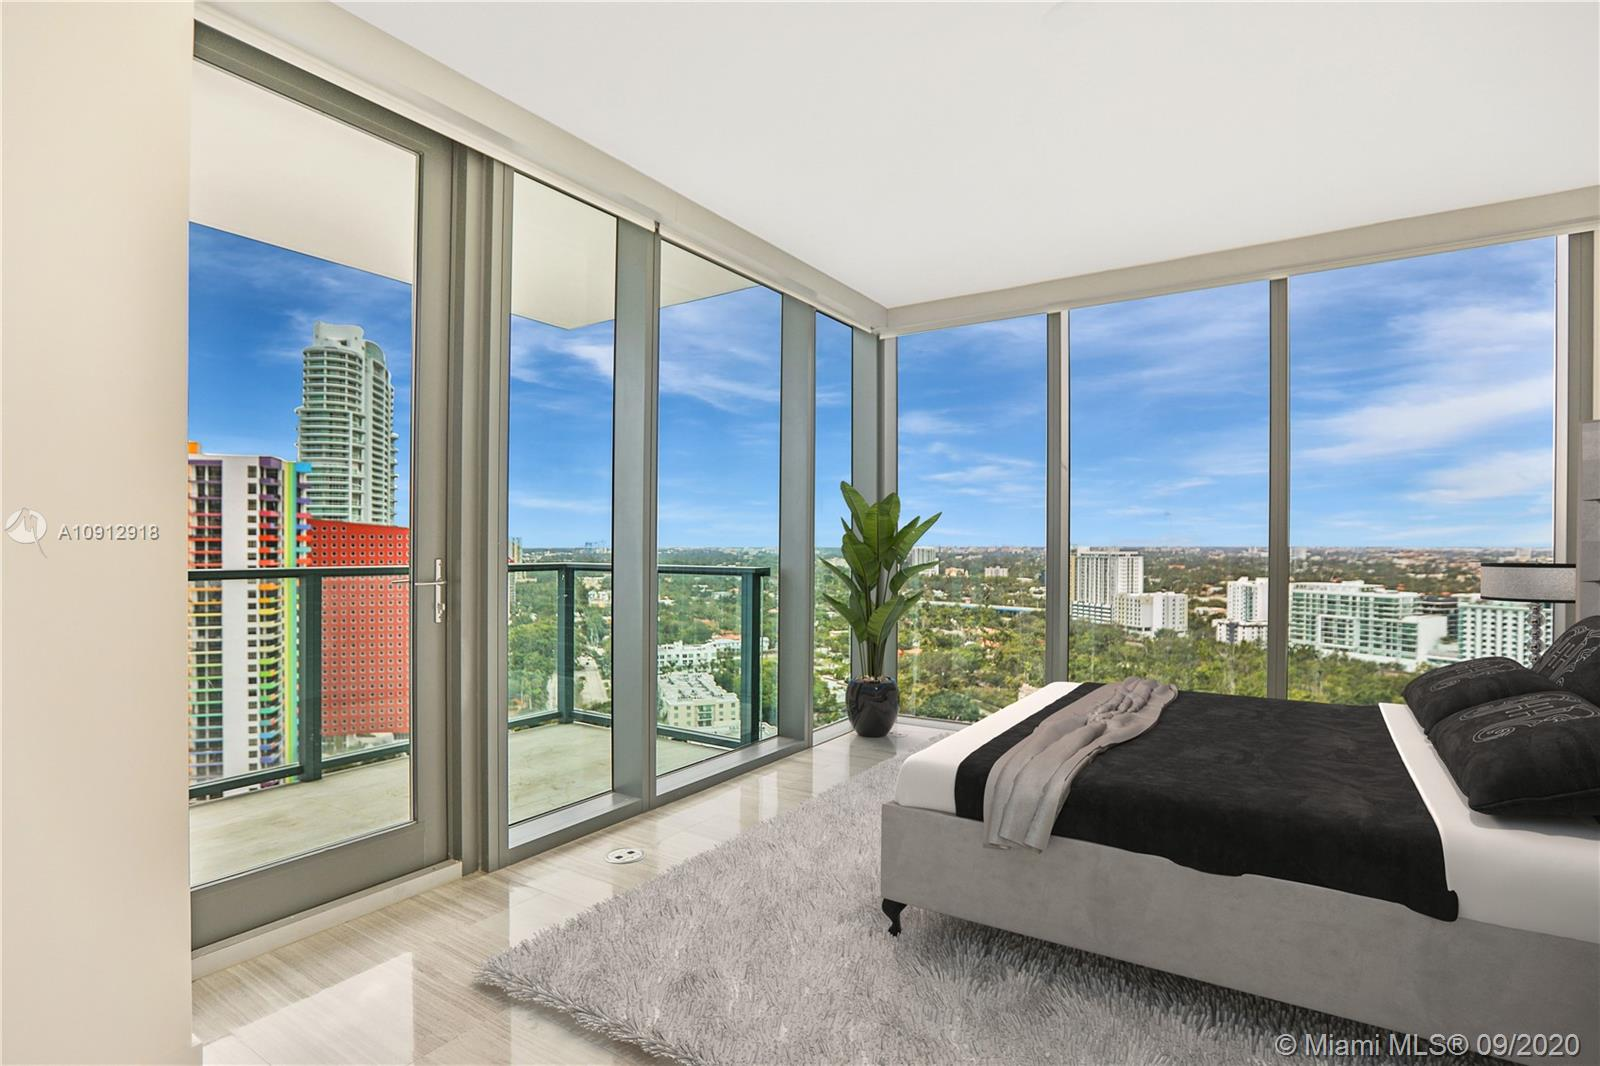 "Luxury Condo For SALE at Echo Brickell; this unique HIDDEN GEM is TWO condos converted to ONE by developer. All NEW CONSTRUCTION, modern residential high-rise that manifest's a birds eye view of Biscayne Bay. Unit features high-end appliances-Sub-Zero, WOLF, Bosch, Italian cabinetry, high ceilings, custom flooring through out, oversized balcony terrace with built in barbecue! In addition custom lighting system and ""Apple"" Home Technology... making it a smart home! 24–Hour CONCIERGE, PRIVATE CHAUFFER SERVICE with in approximately 5 miles and for airport drop offs and Pet Friendly! Dog walker included.! *Call or Text listing agent for more details, background check at tenants expense."